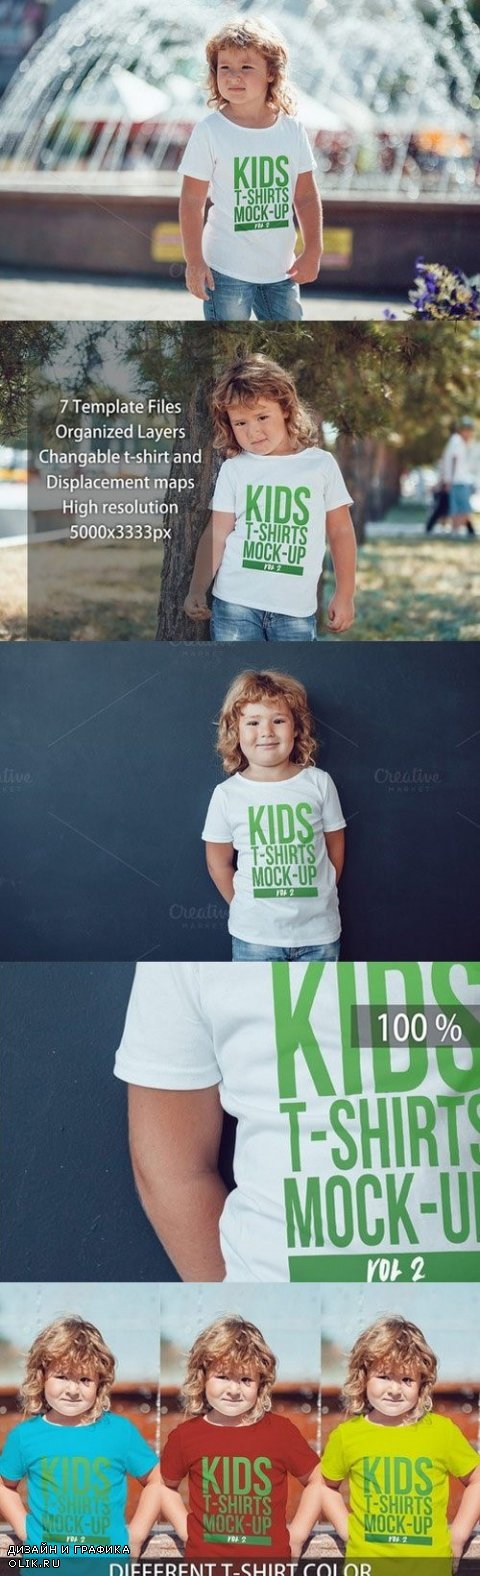 Kids T-Shirt Mock-Up Vol 2 - 874905